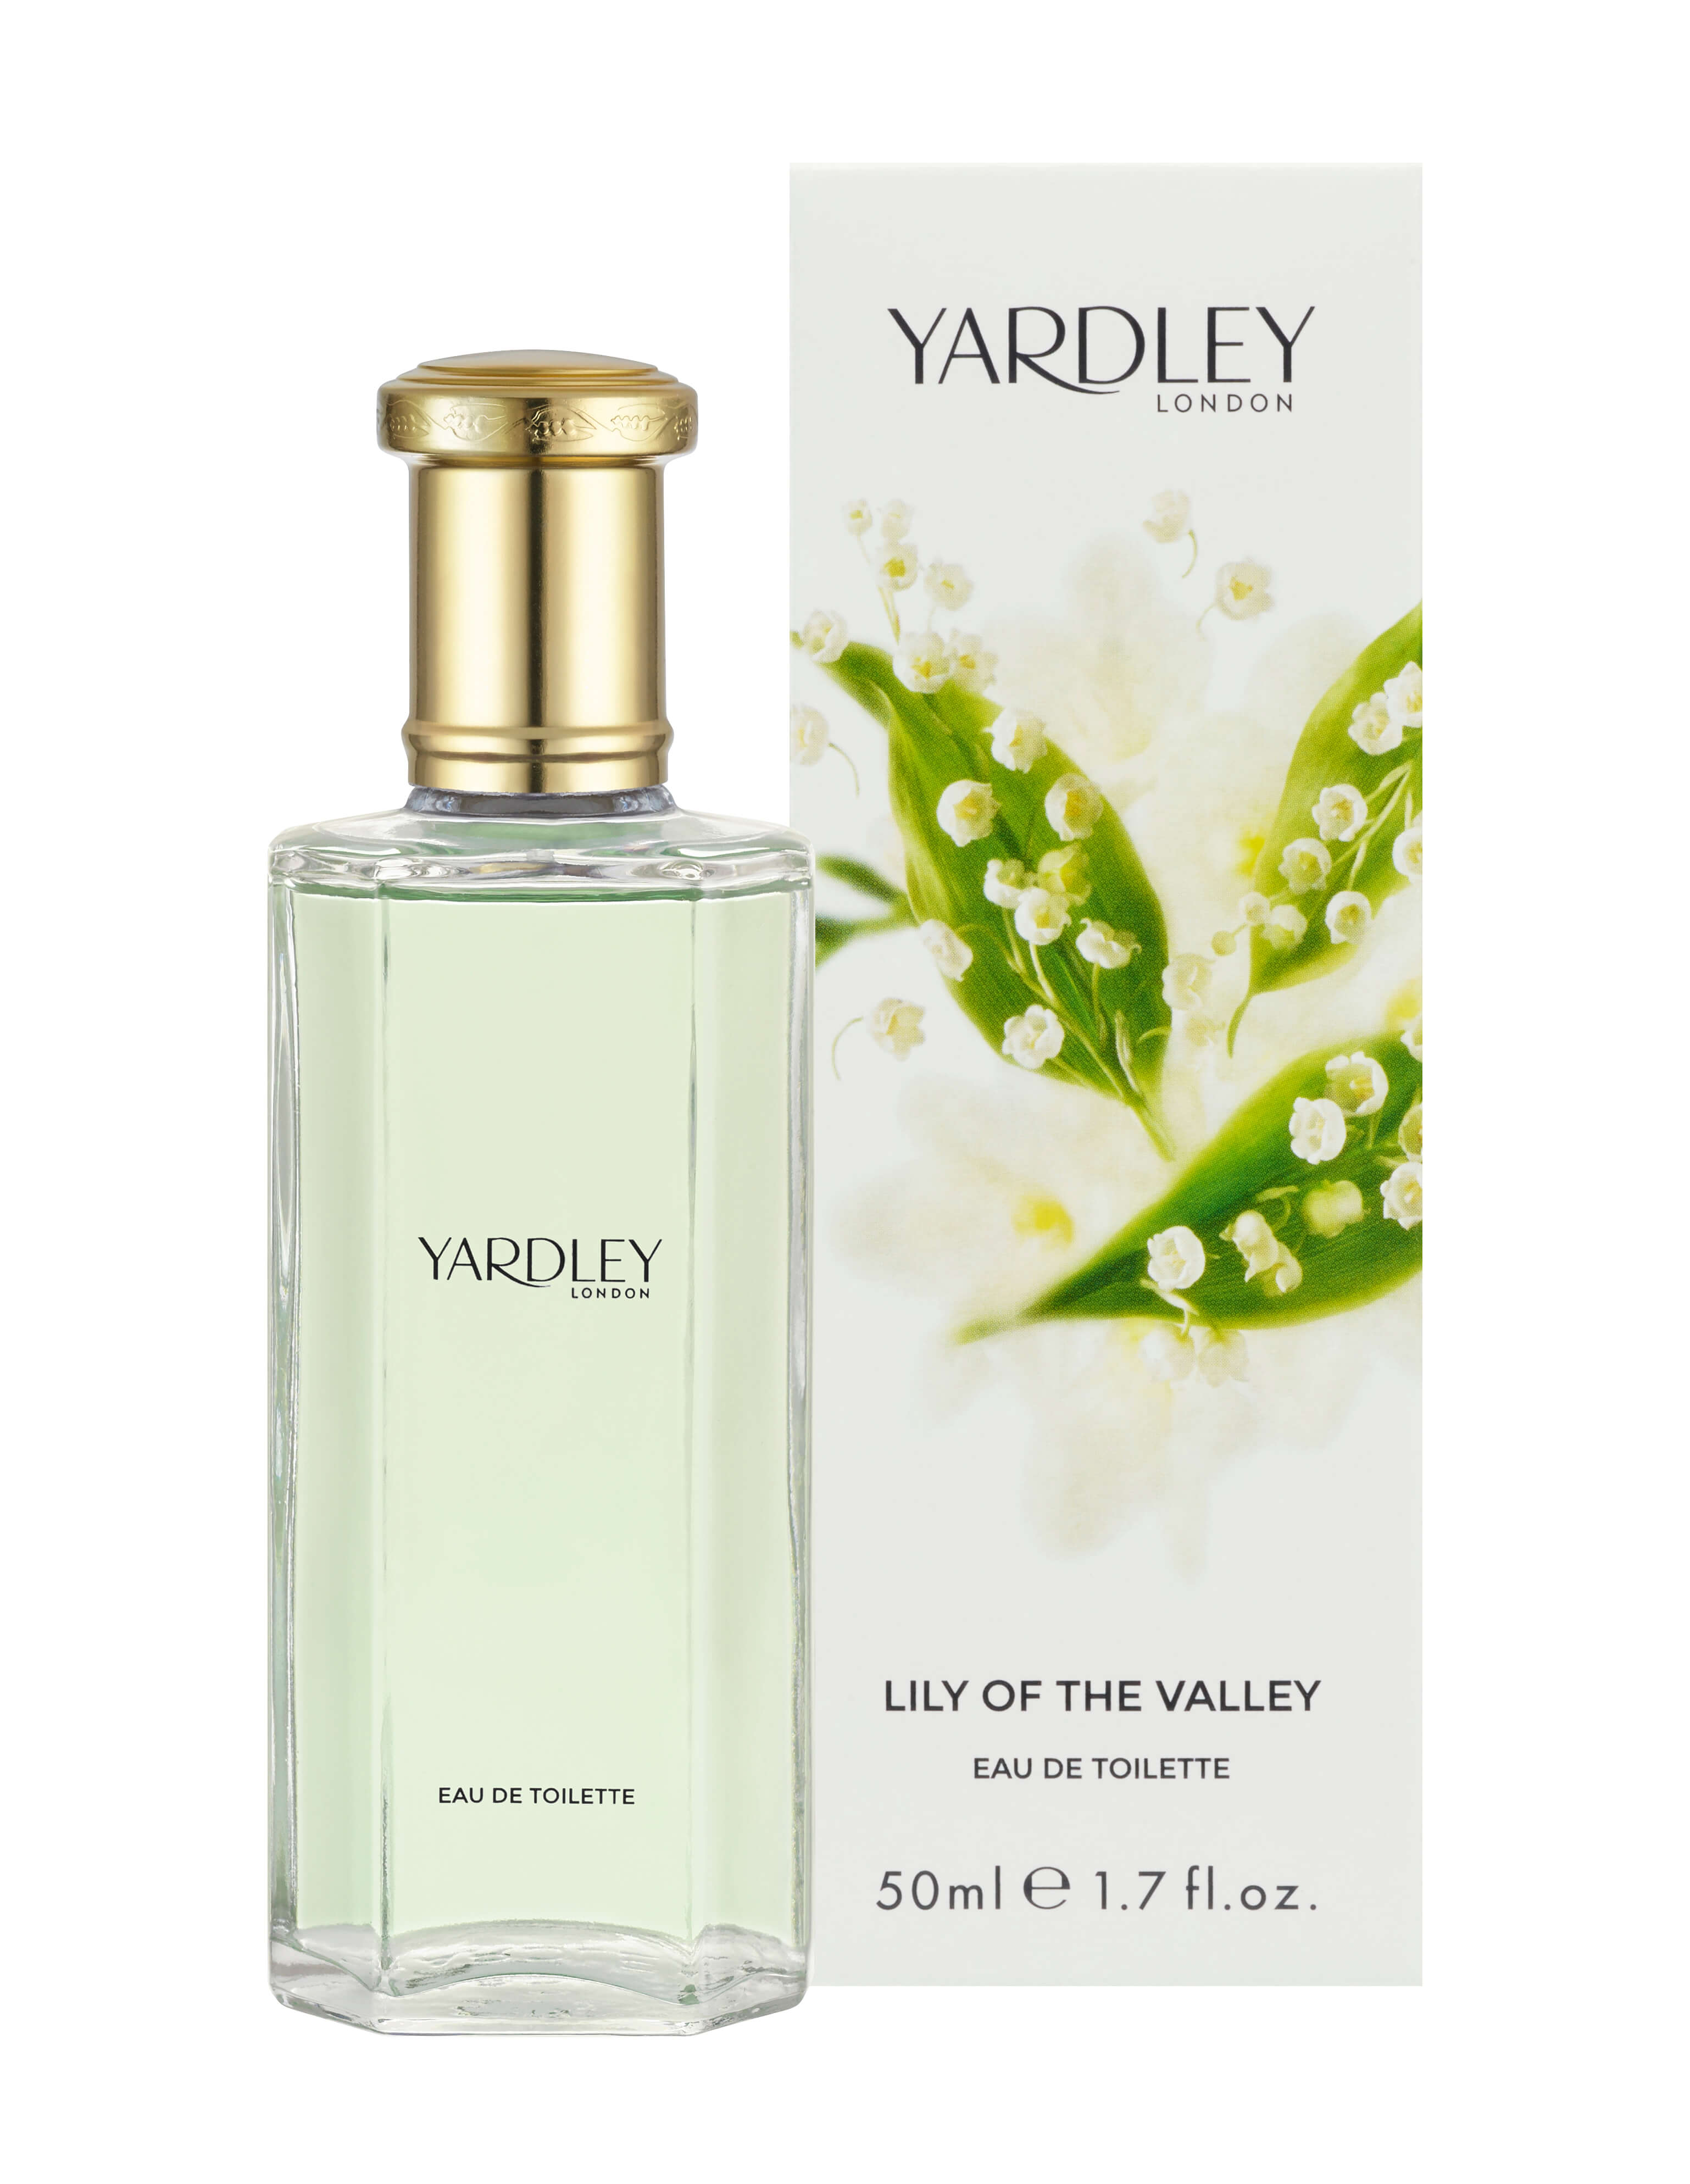 Lily of the Valley - Eau de Toilette